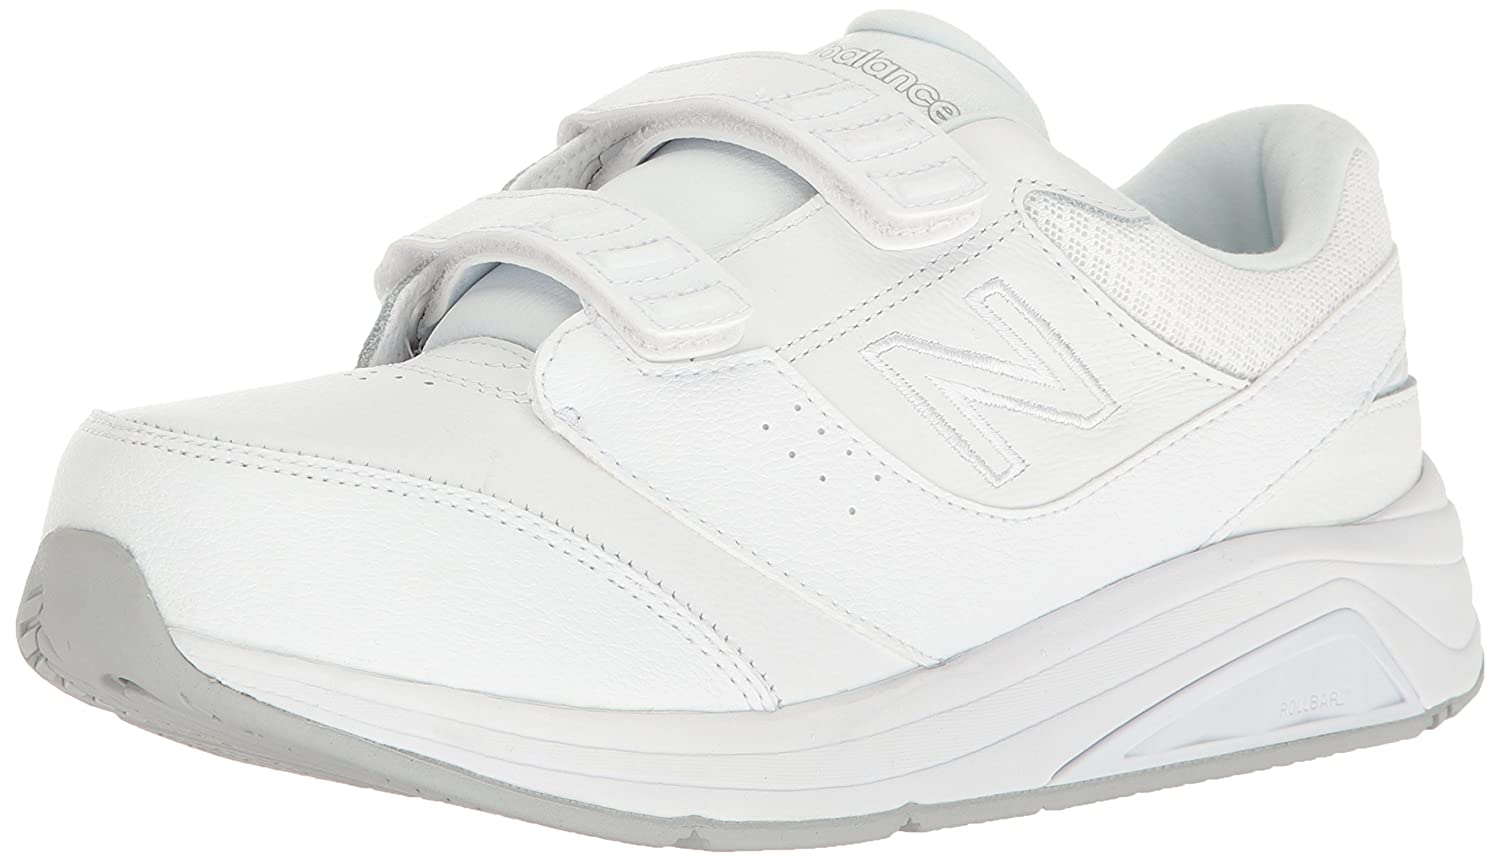 New Balance Women's Womens 928v3 Walking Shoe Walking Shoe B01NA7CD8Y 10 2A US|White/White